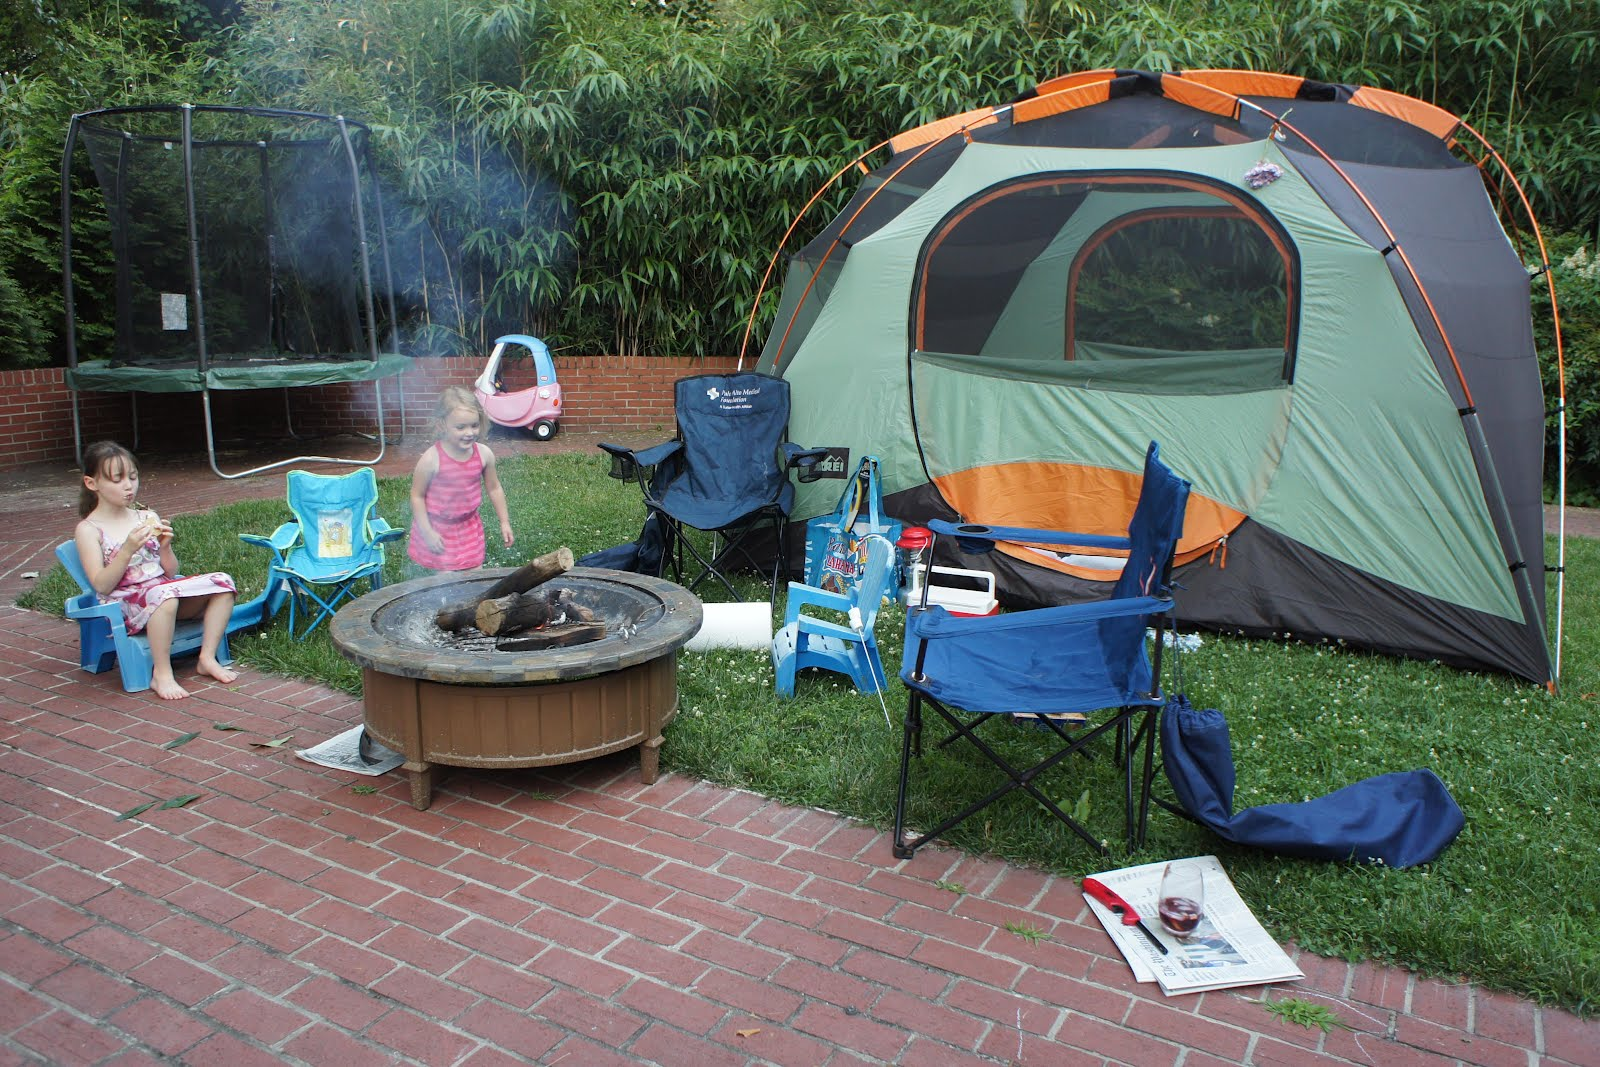 Camping In The Backyard Highlights : Ah, their favorite part of camping has arrived Smores!